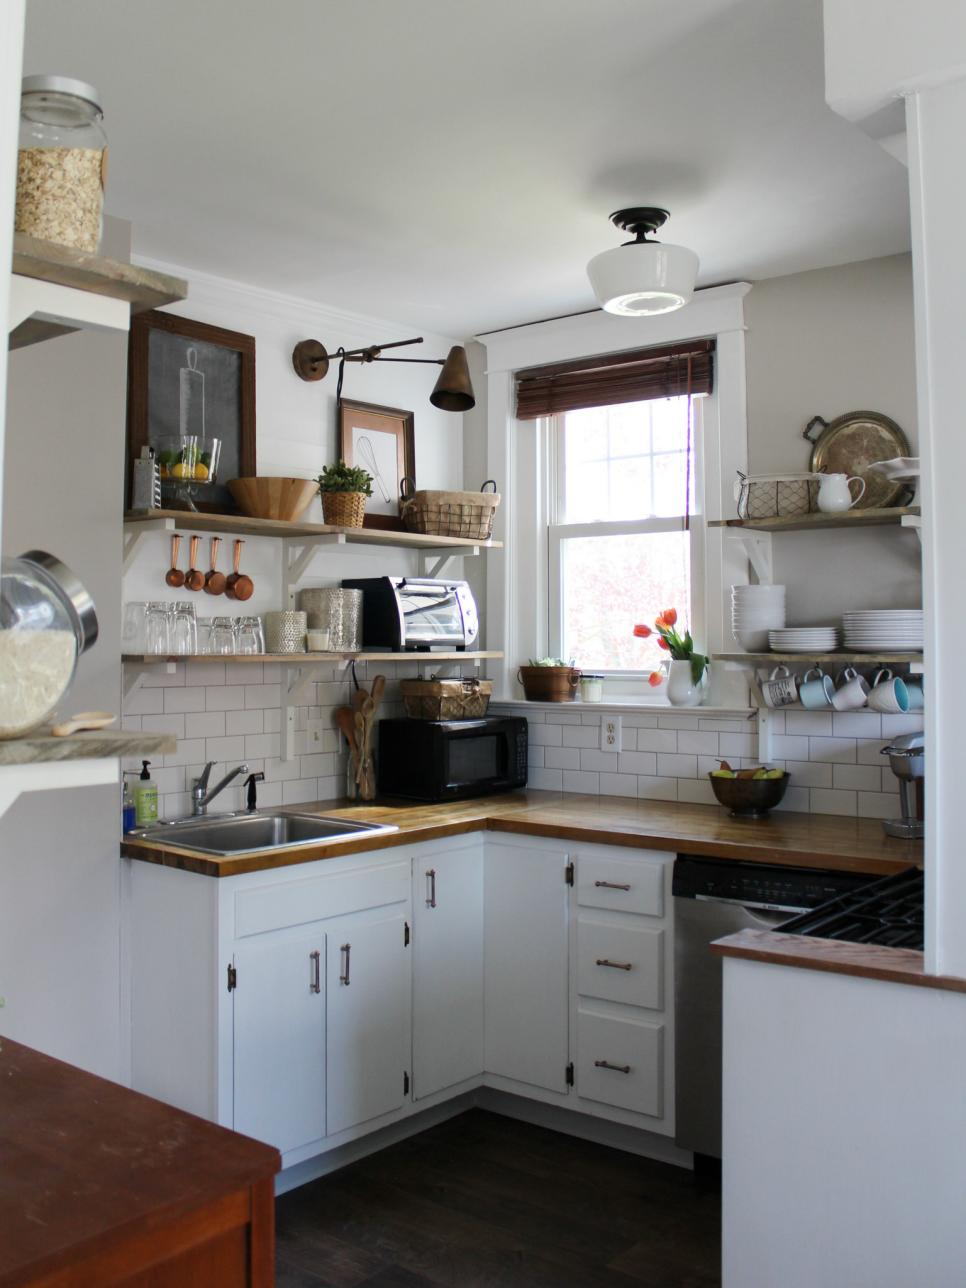 Before-and-After Kitchen Remodels On A Budget